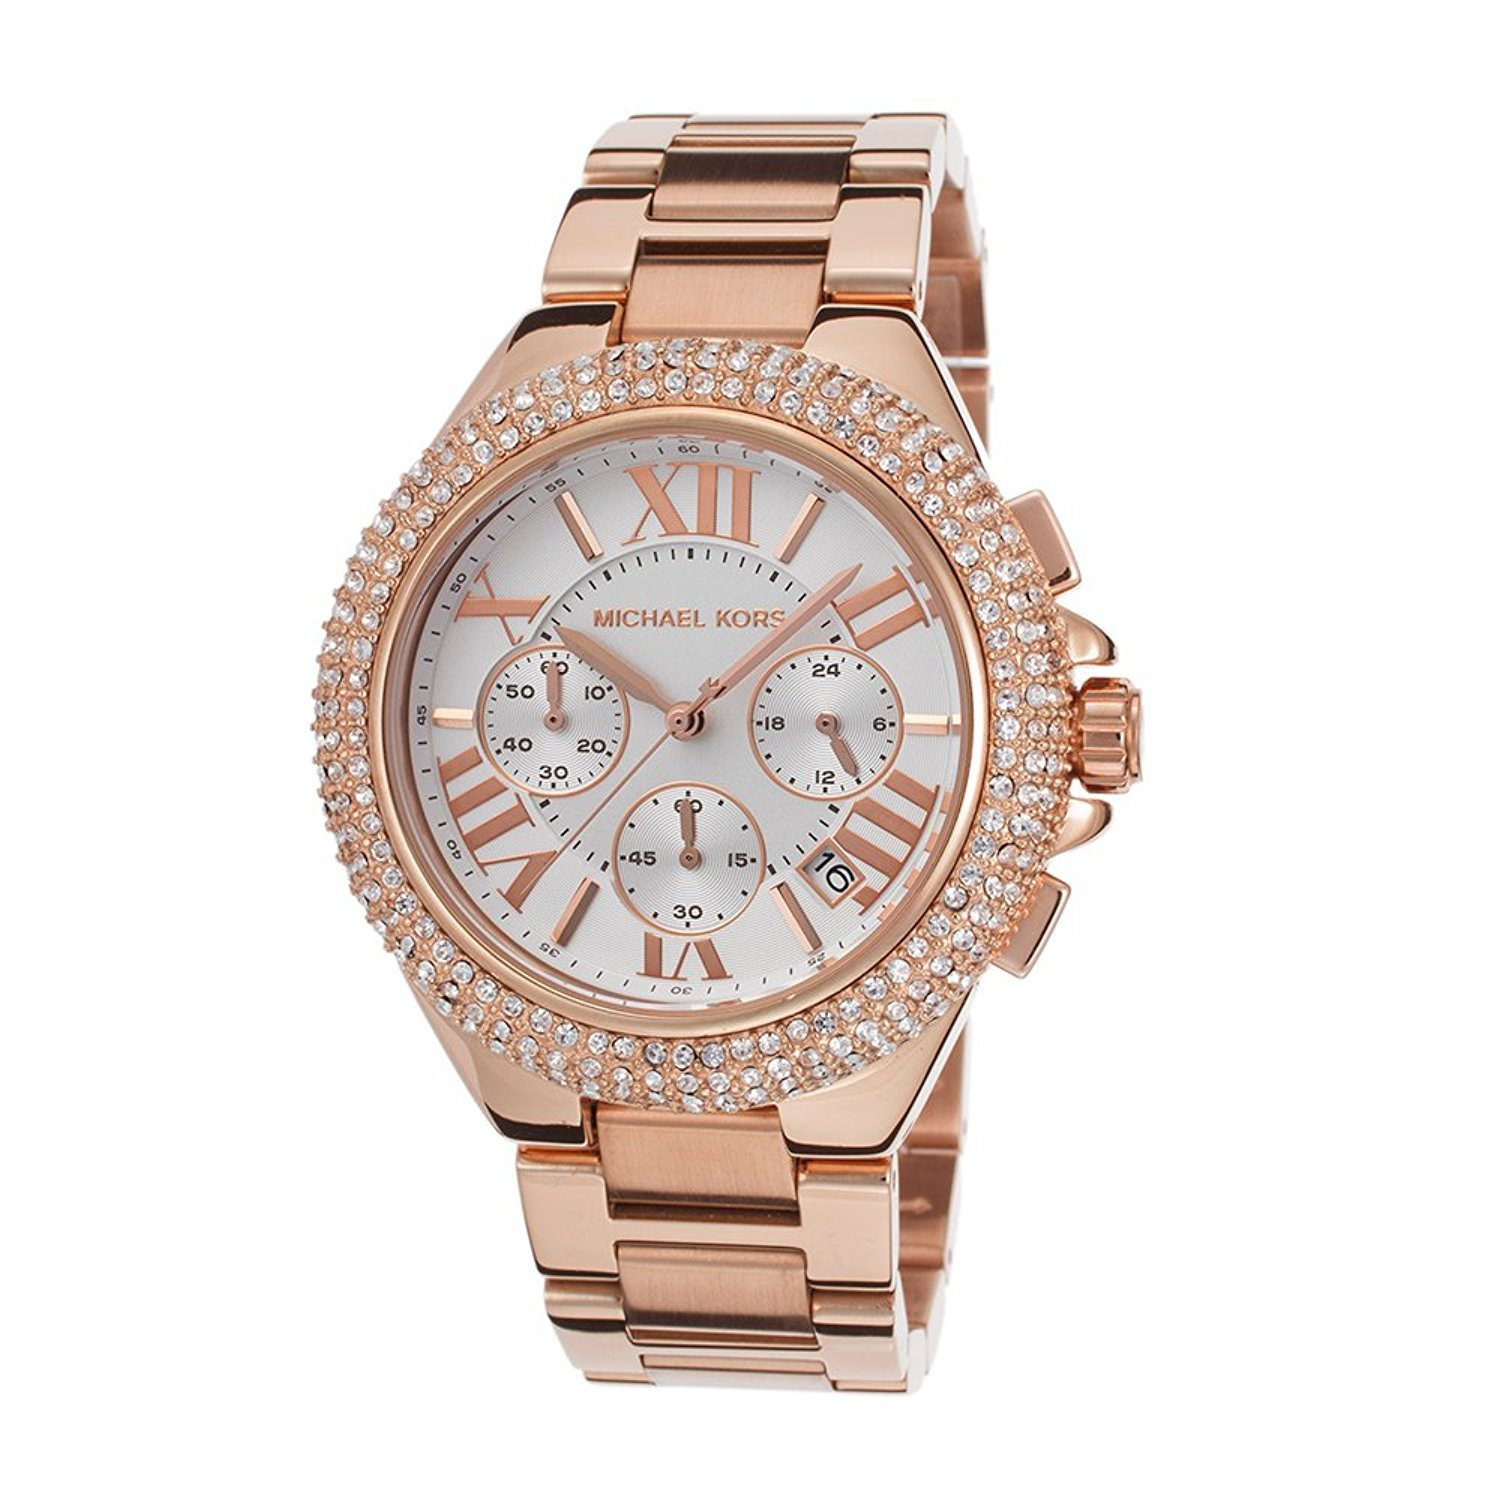 5106a3525150 Amazon.com  Michael Kors MK5636W Women s Chronograph Camille Rose Gold-Tone  Stainless Steel Bracelet Watch …  Watches